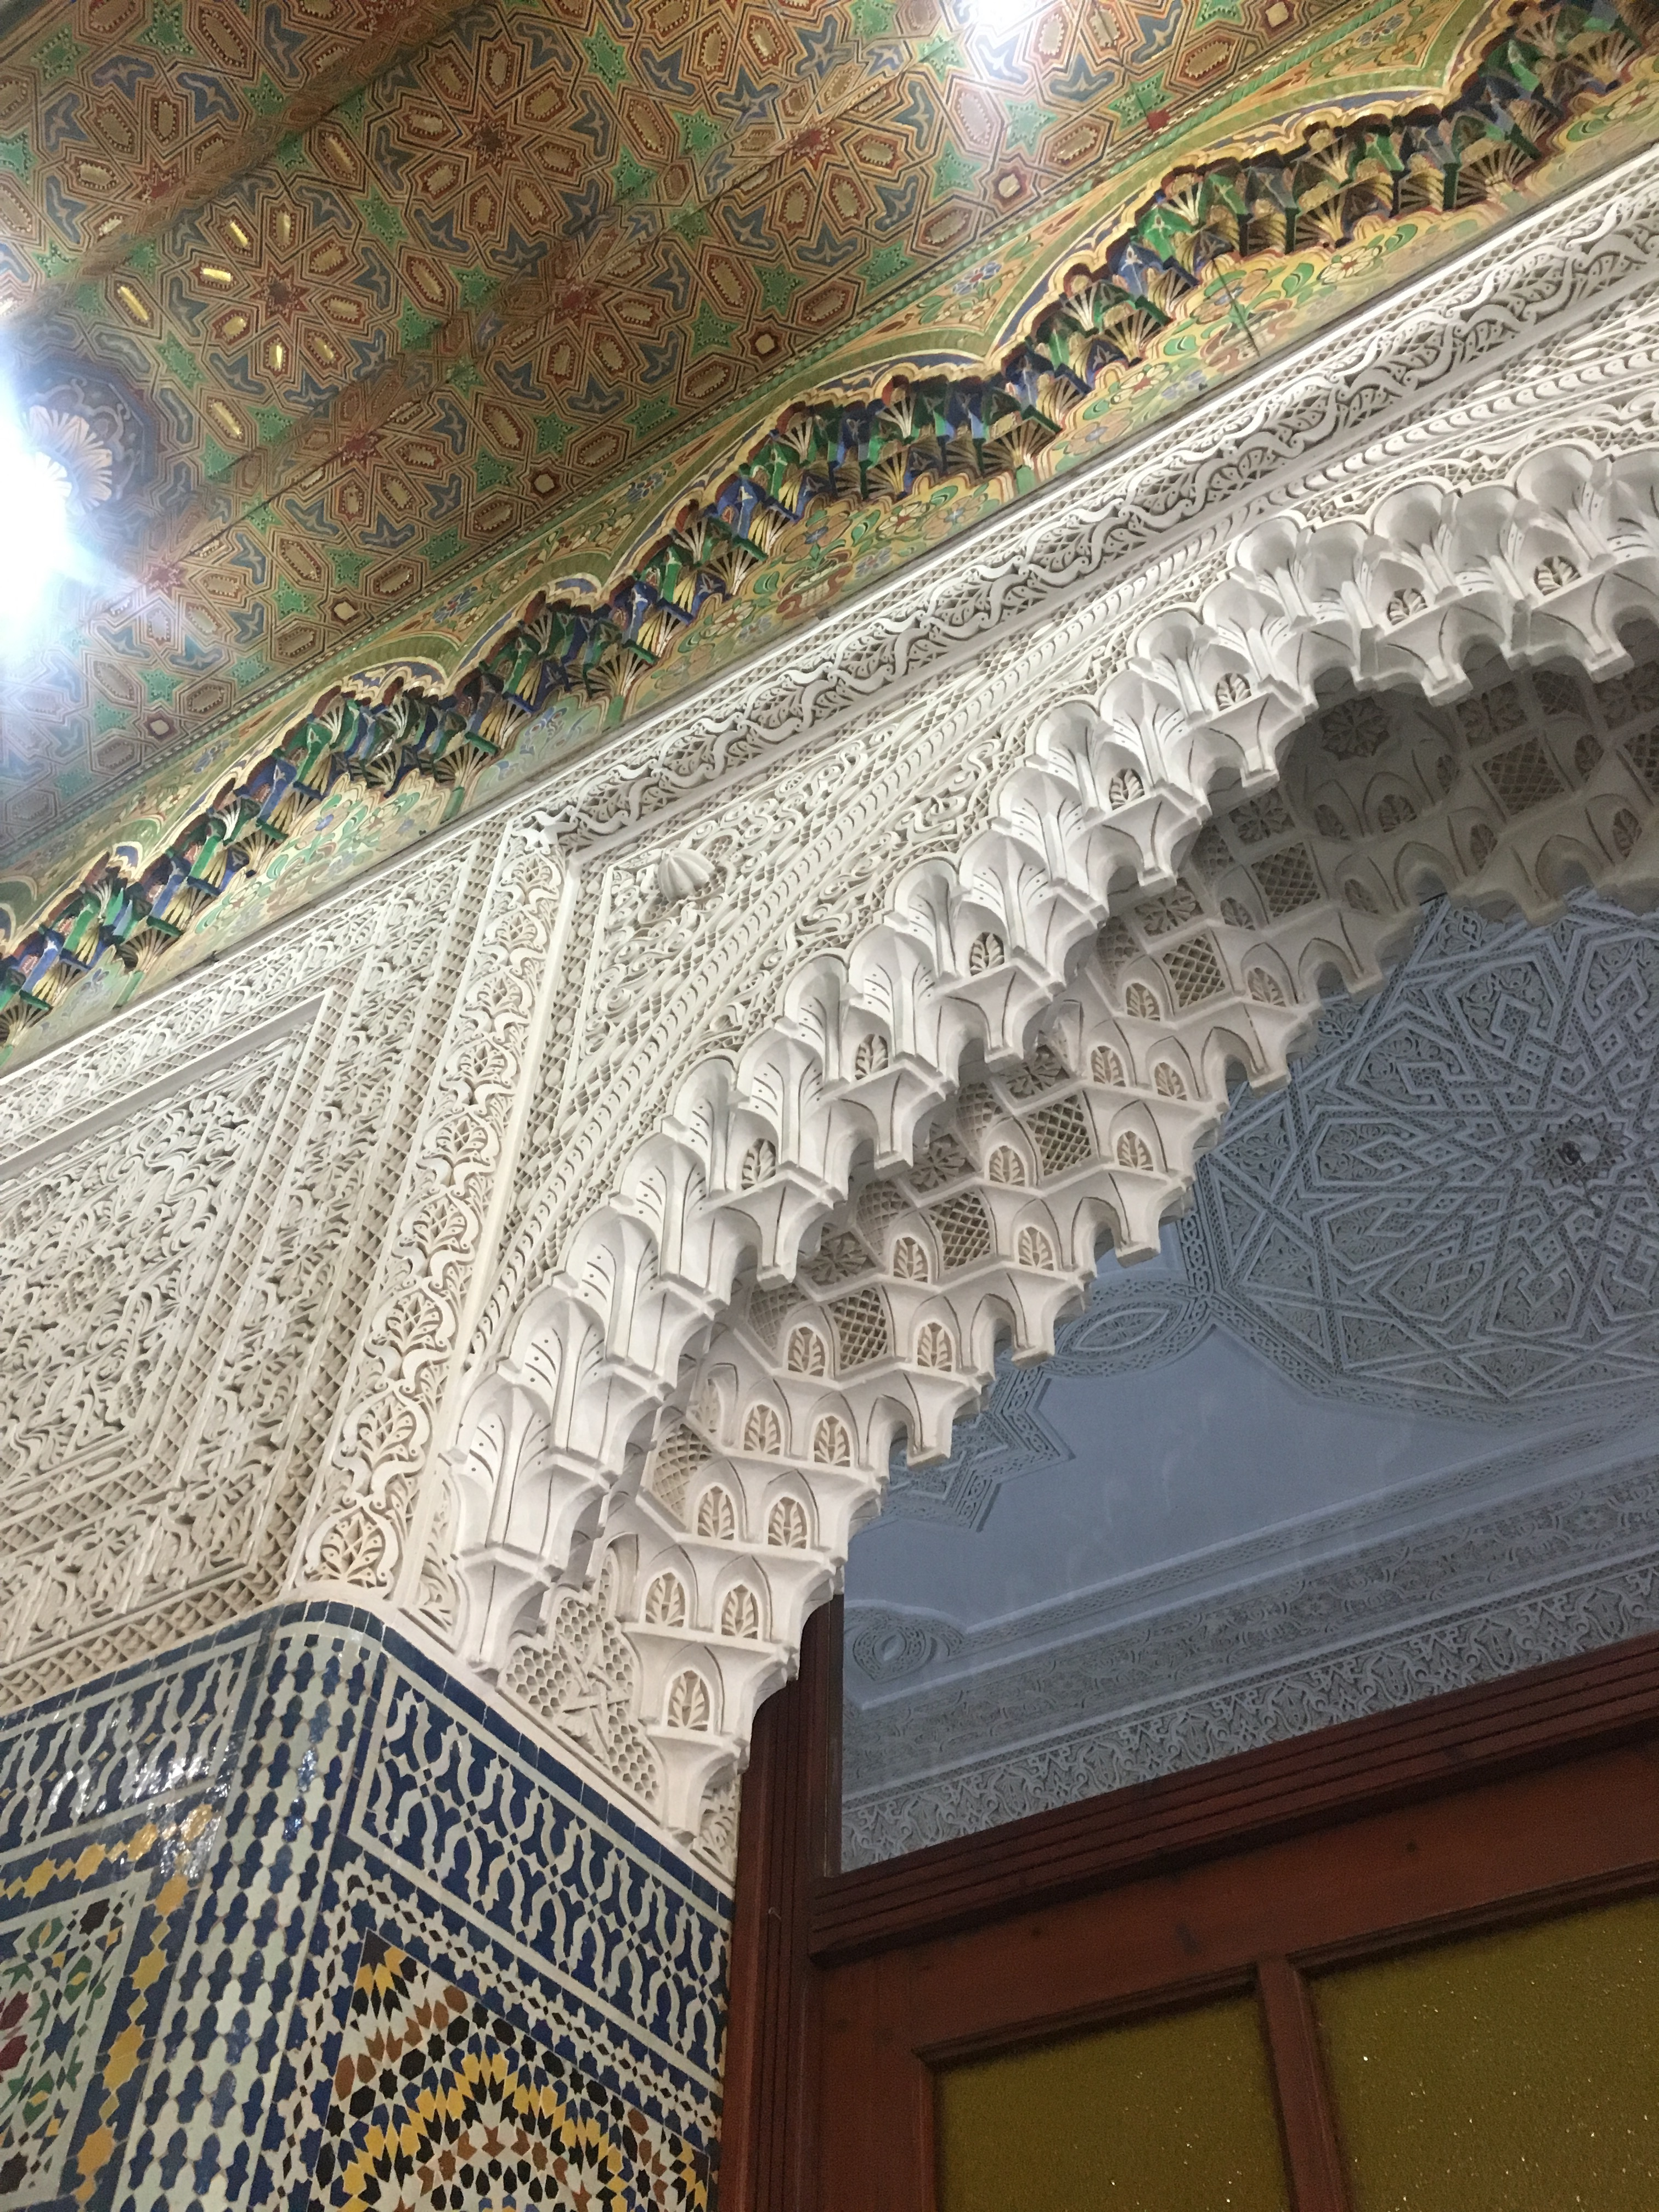 Moroccan architectural details